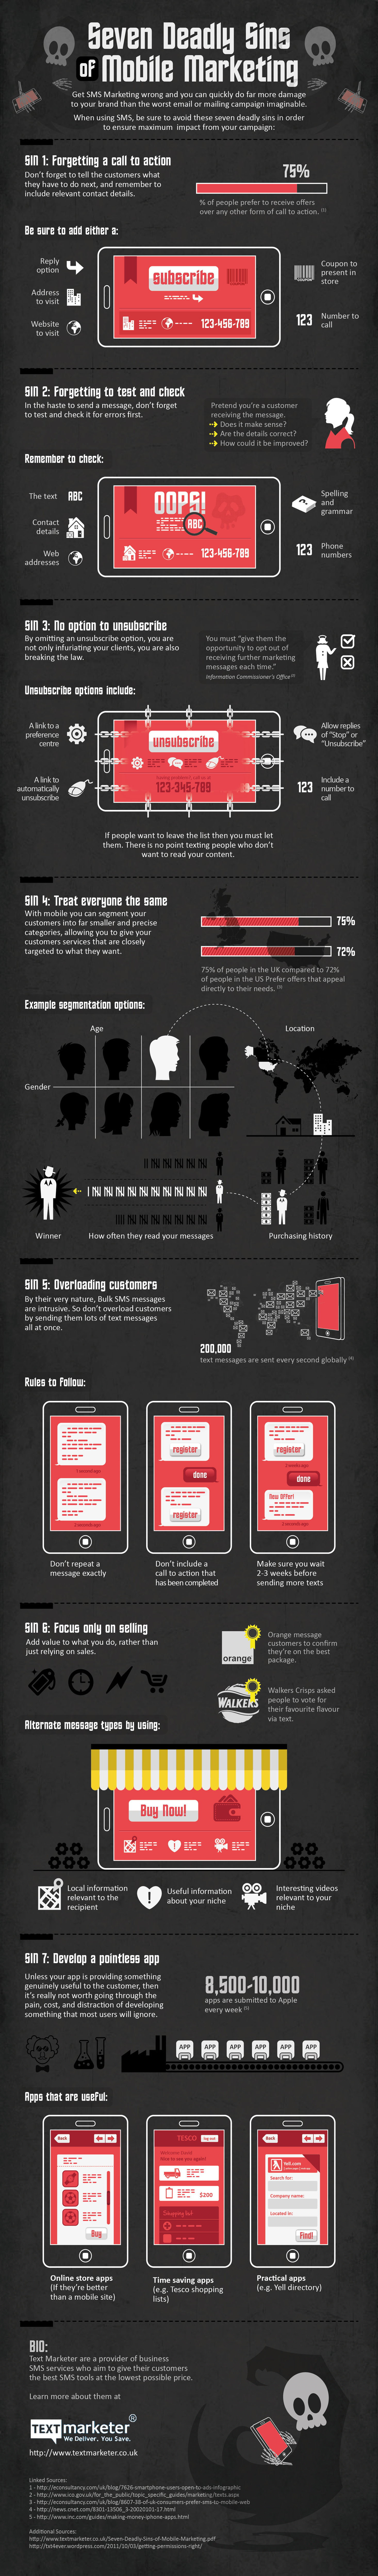 Seven-Deadly-Sins-Of-Mobile-Marketing-infographic